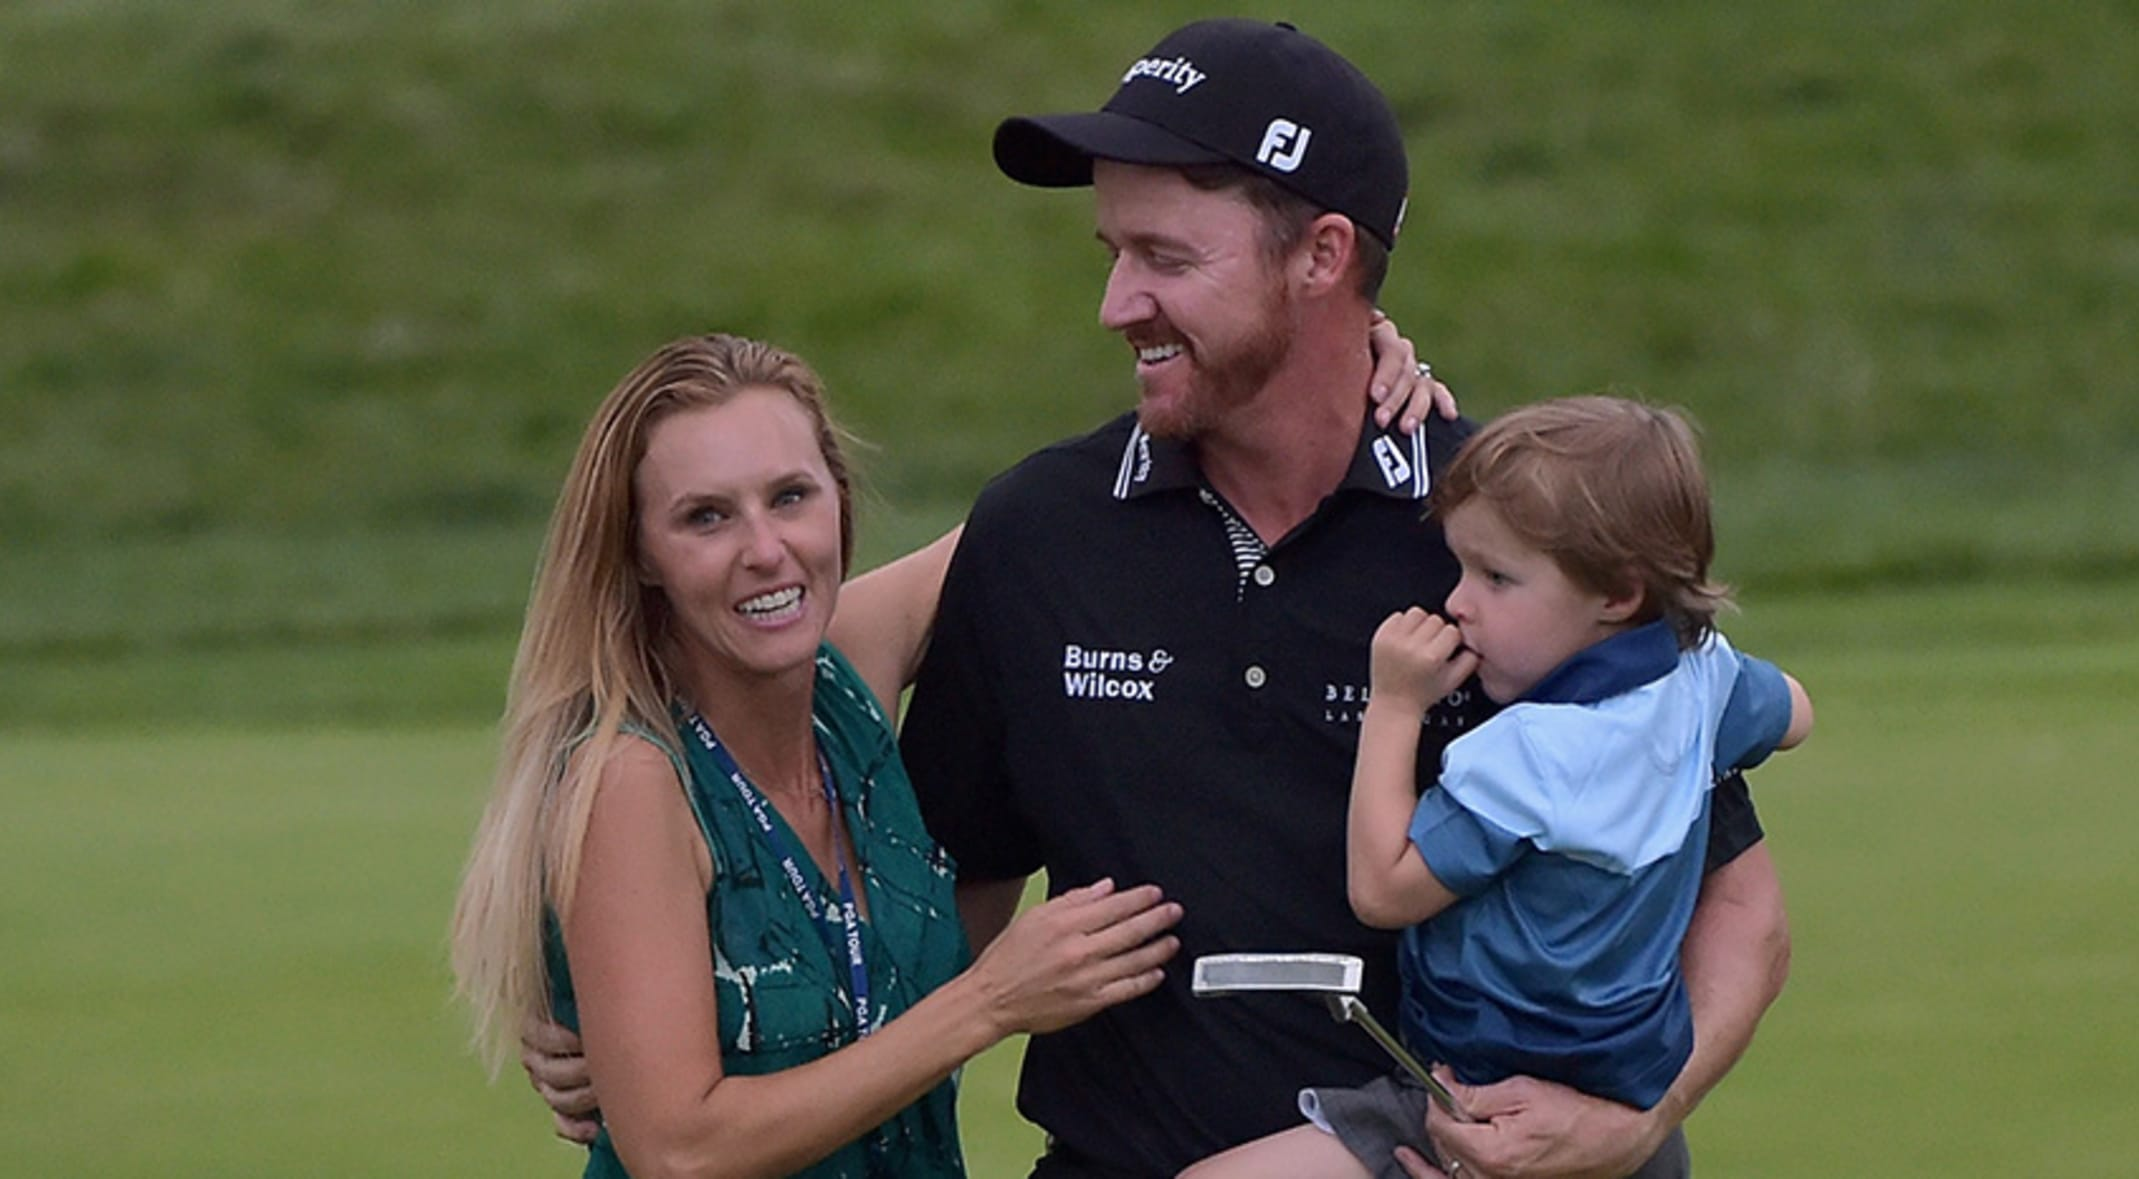 Jimmy Walker hadn't recorded a top-10 on TOUR since early March.